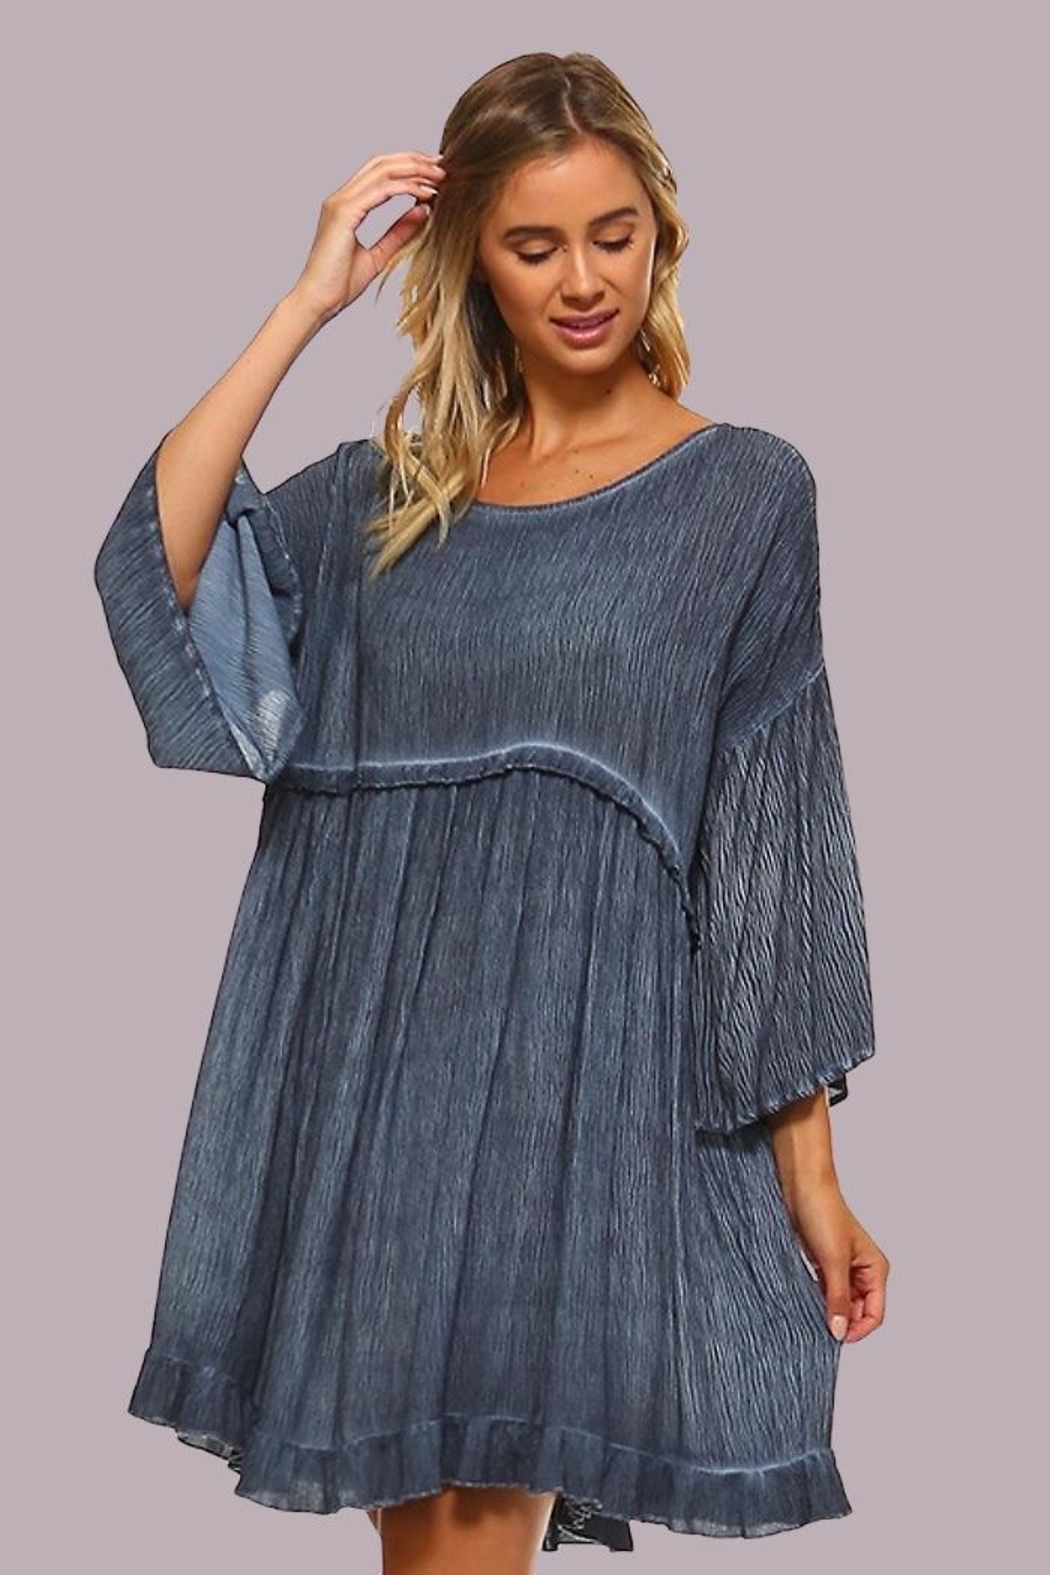 People Outfitter Margaret Summer Dress - Main Image